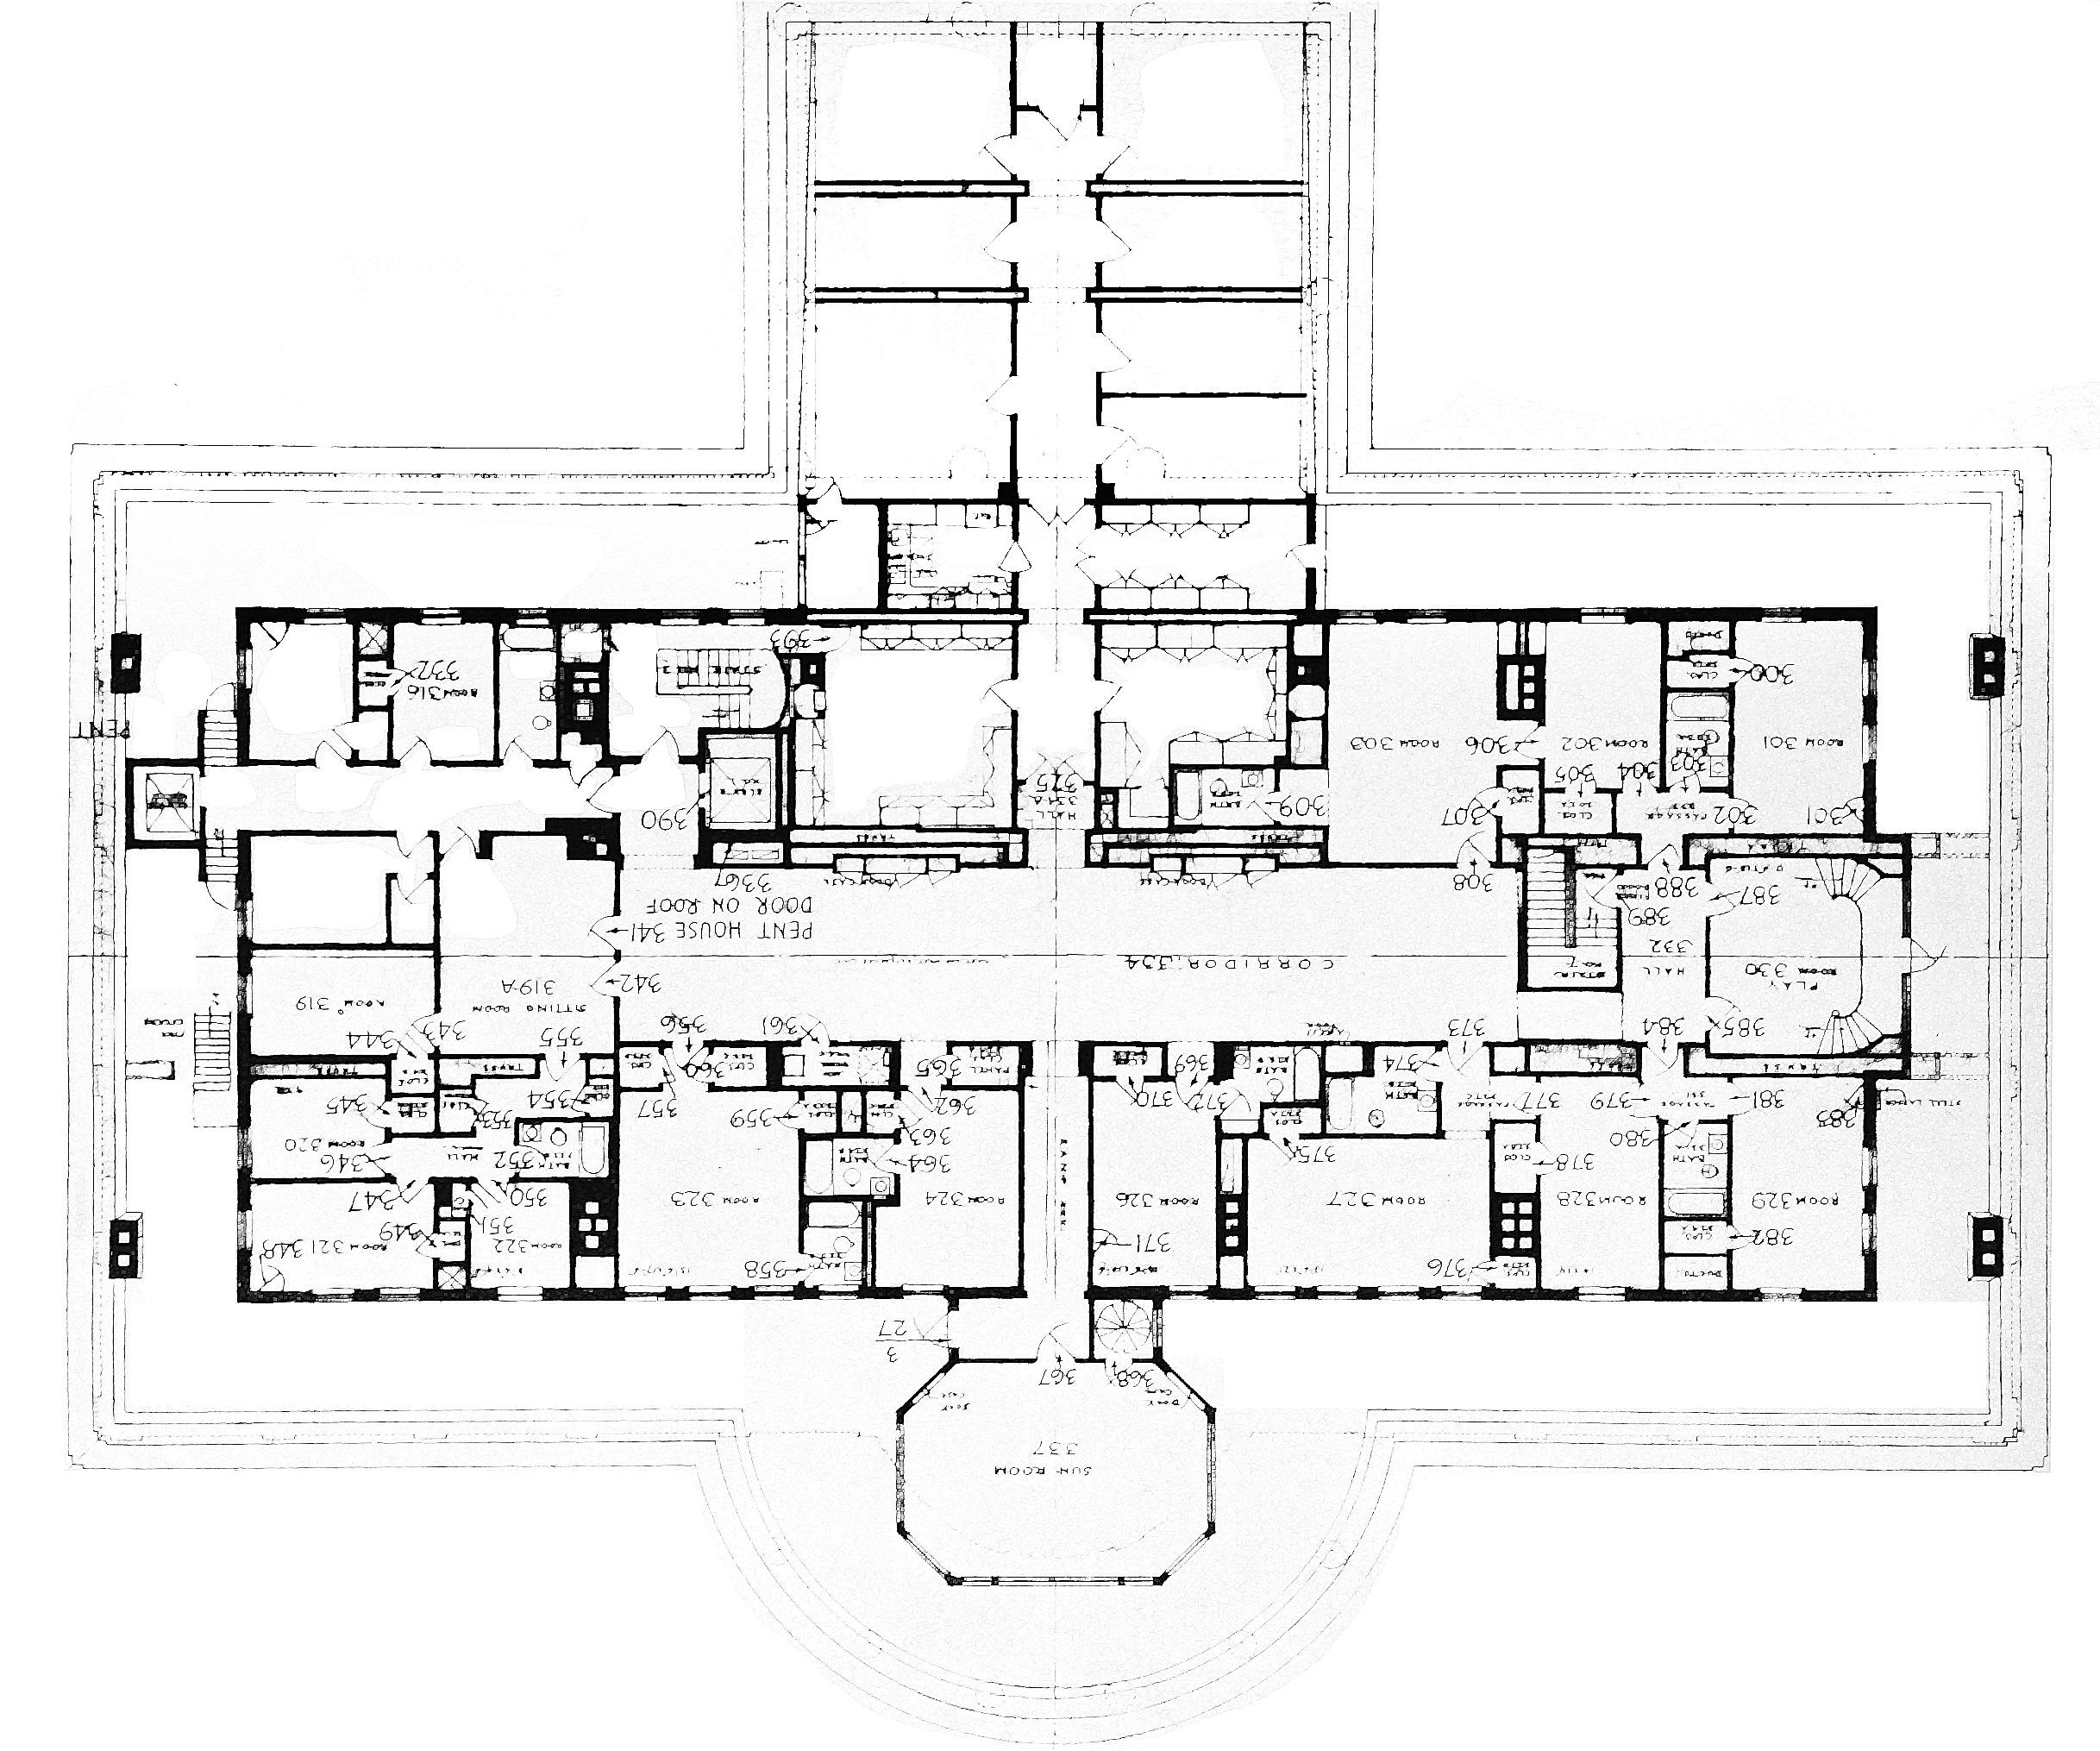 Image From Http Cdn Houseplannings Com Images Www Whitehousemuseum Org Images Source Floor3 1952 Jpg Home Design Floor Plans House Floor Plans House Flooring